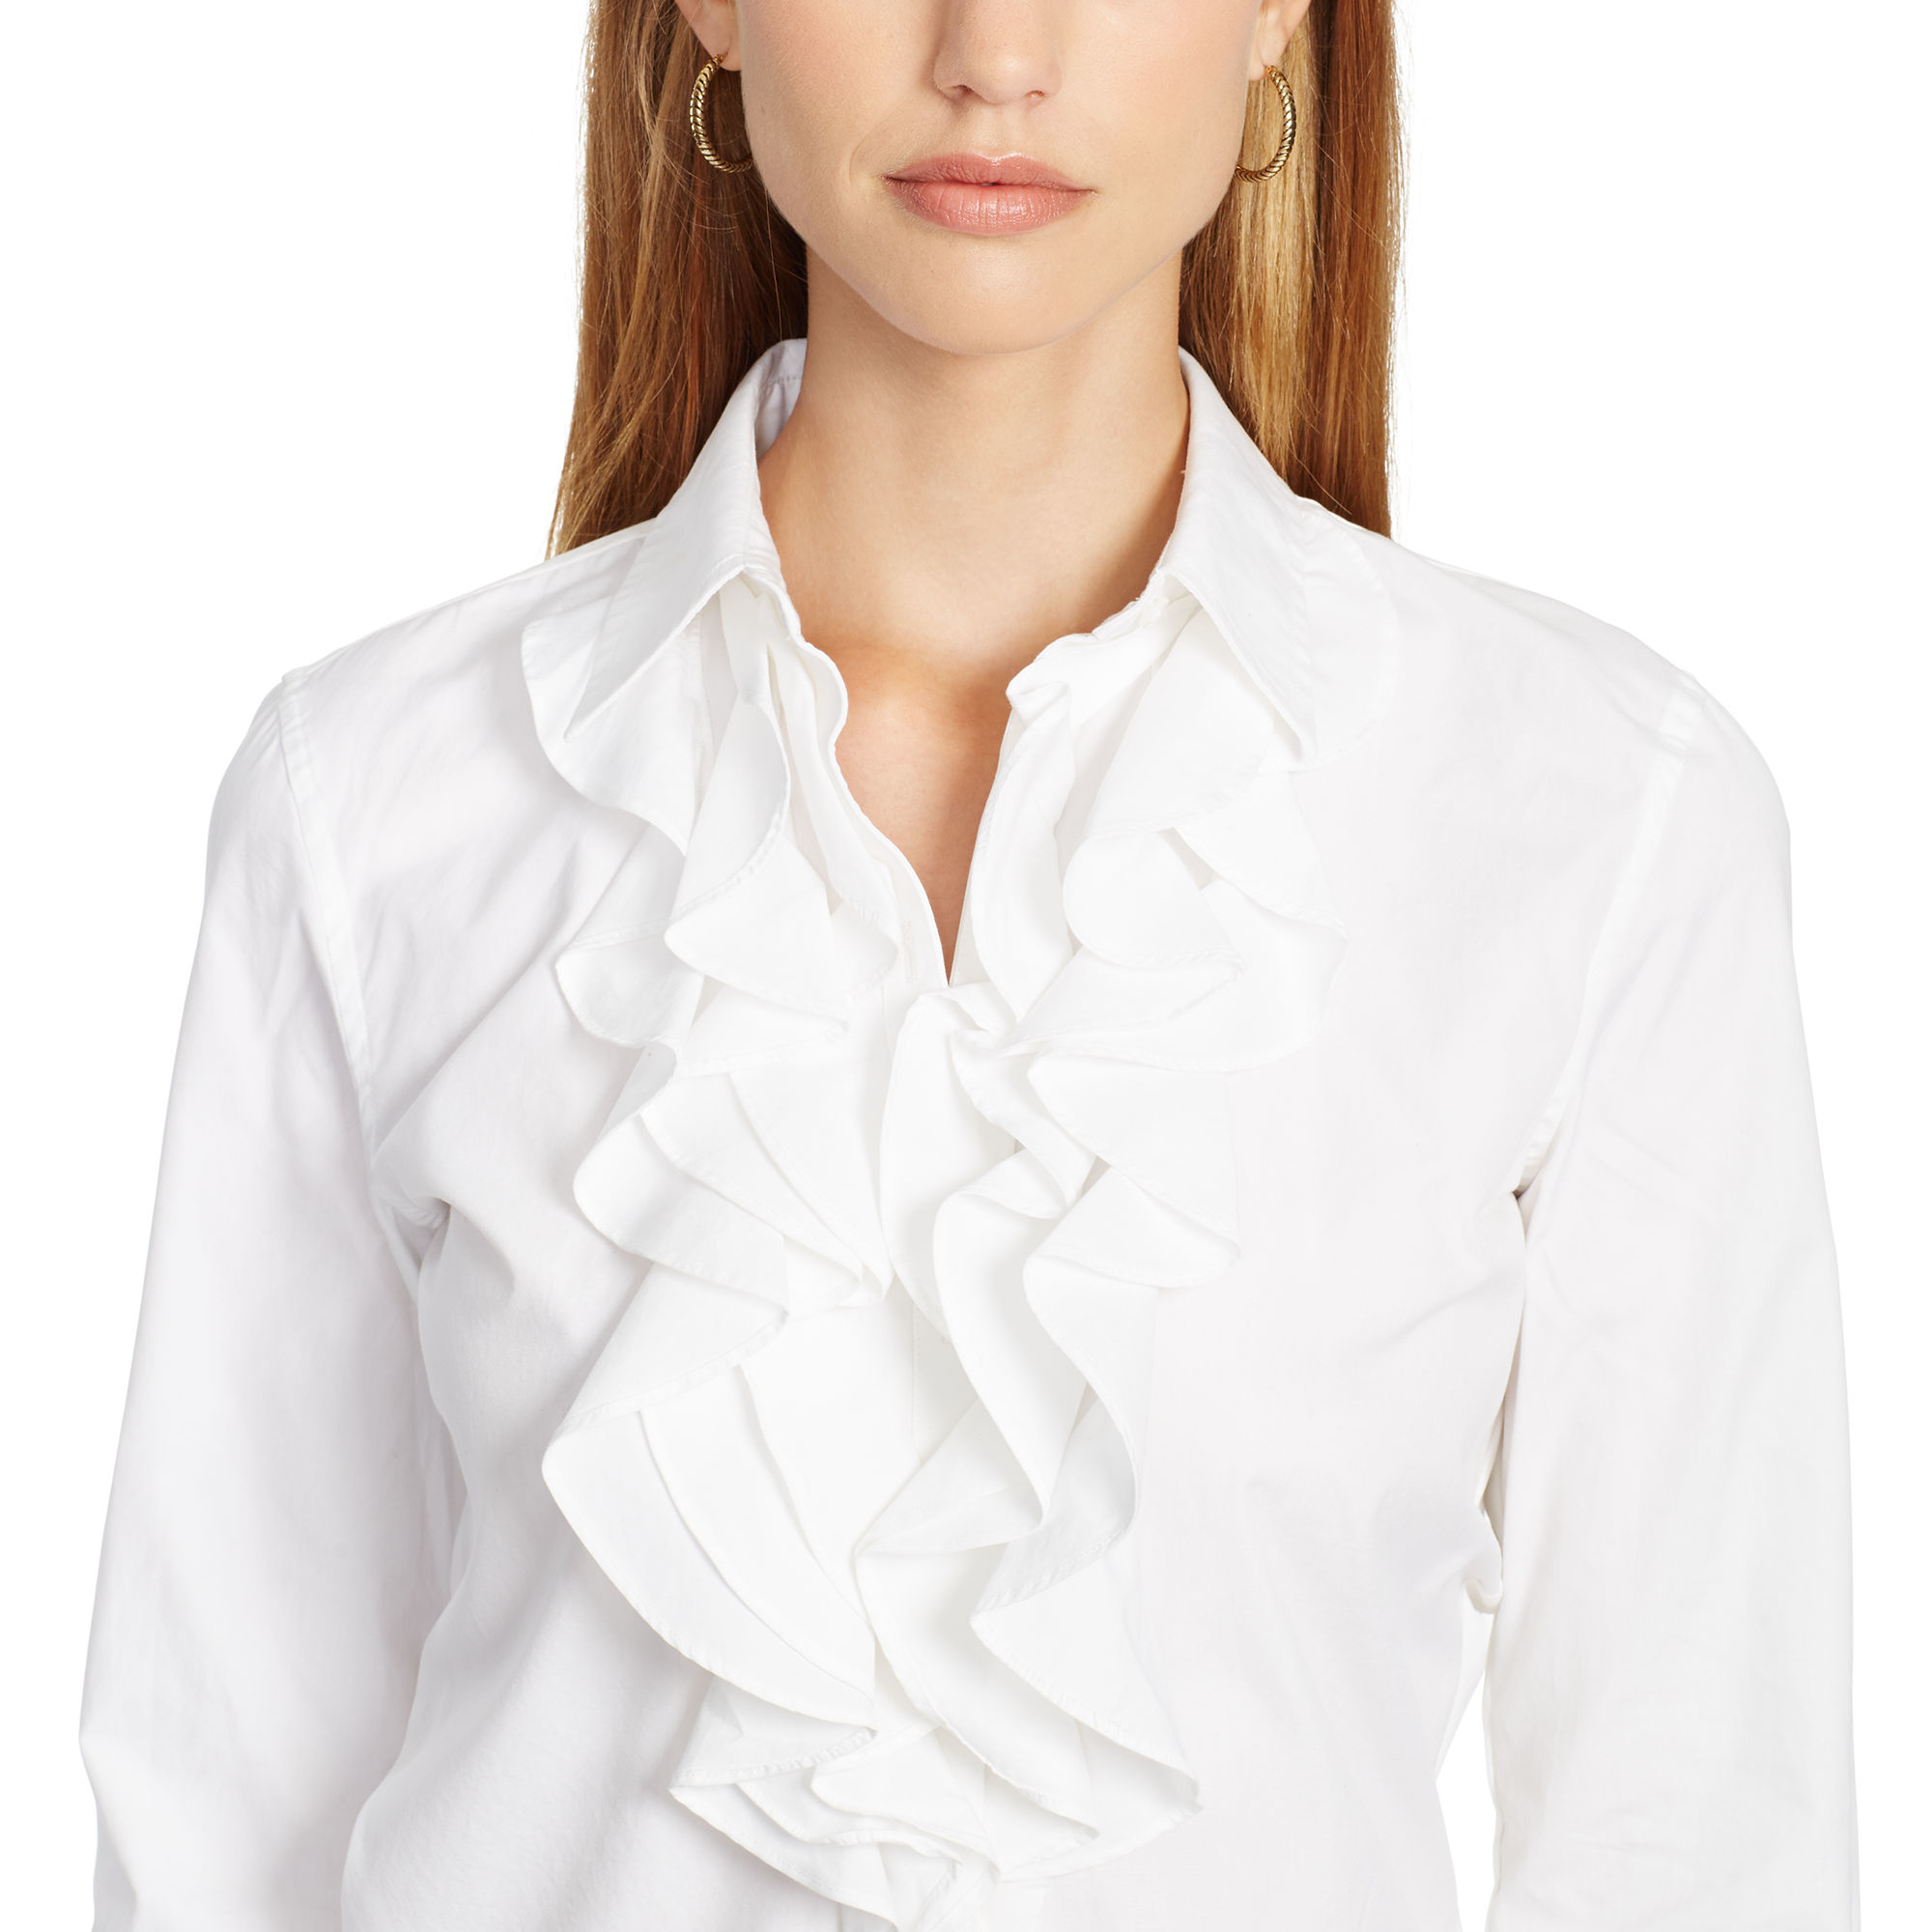 6a9b40e53269f3 ... real canada ralph lauren ruffle front cotton shirt in white lyst 71f95  746a9 2c407 ccba8